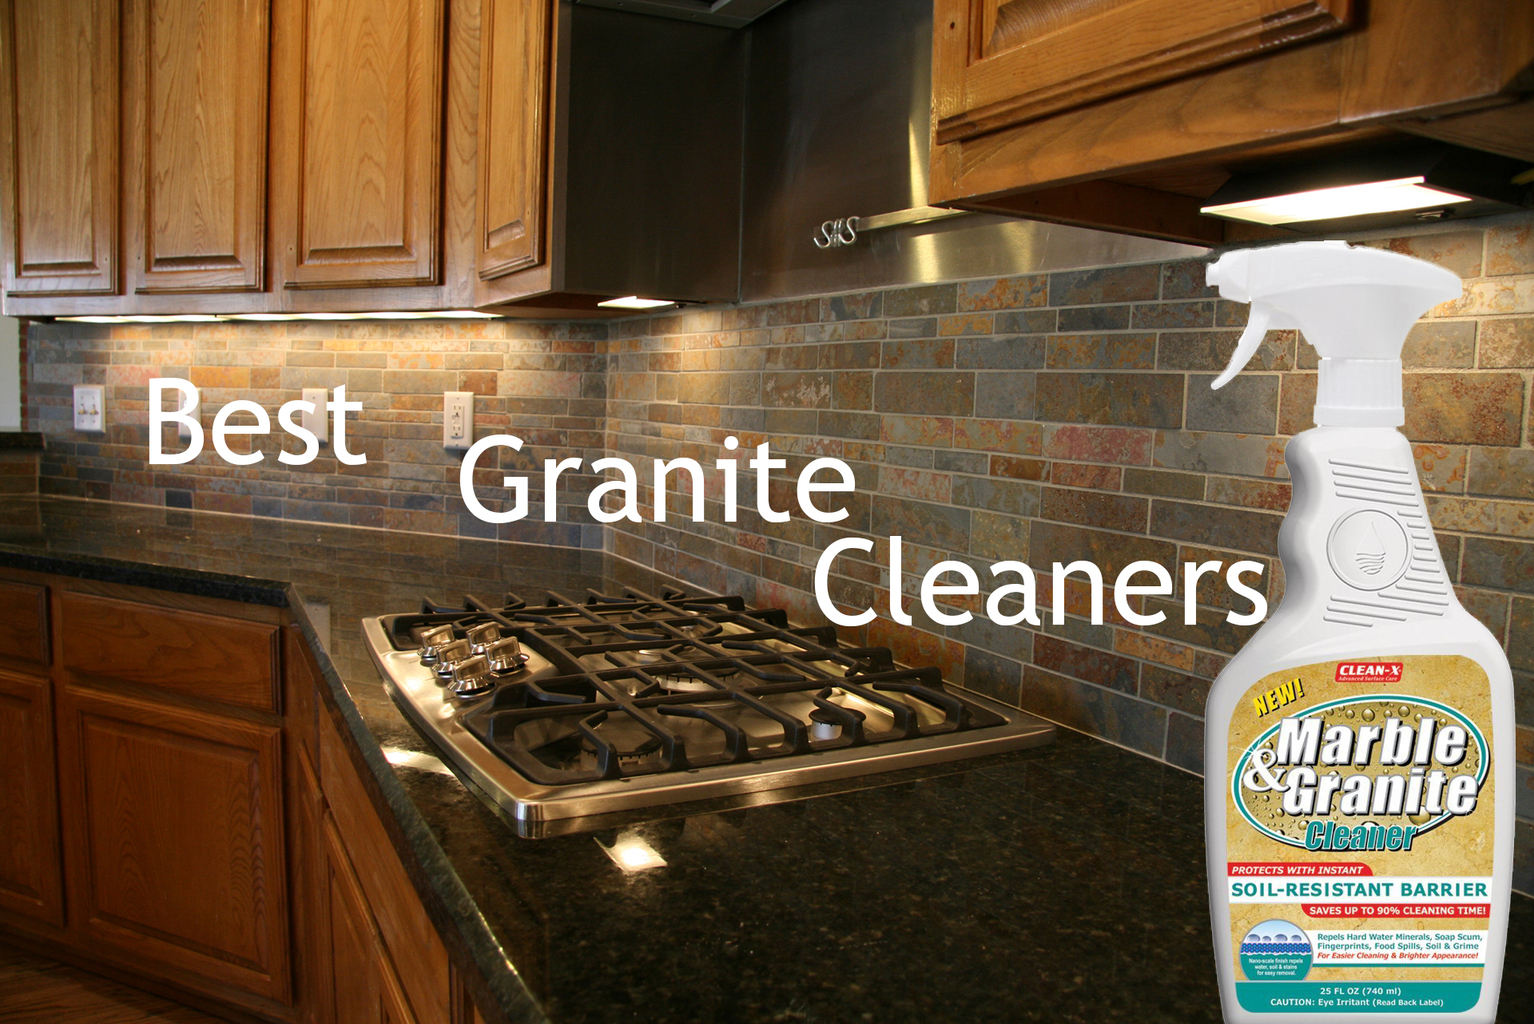 granite to deposits cleaning ive way water best my this even countertops well easiest and cleaner ad cupcakesandcrinoline remove how it hard as ve removes found zepsocialstars from the countertop for com tip i clean